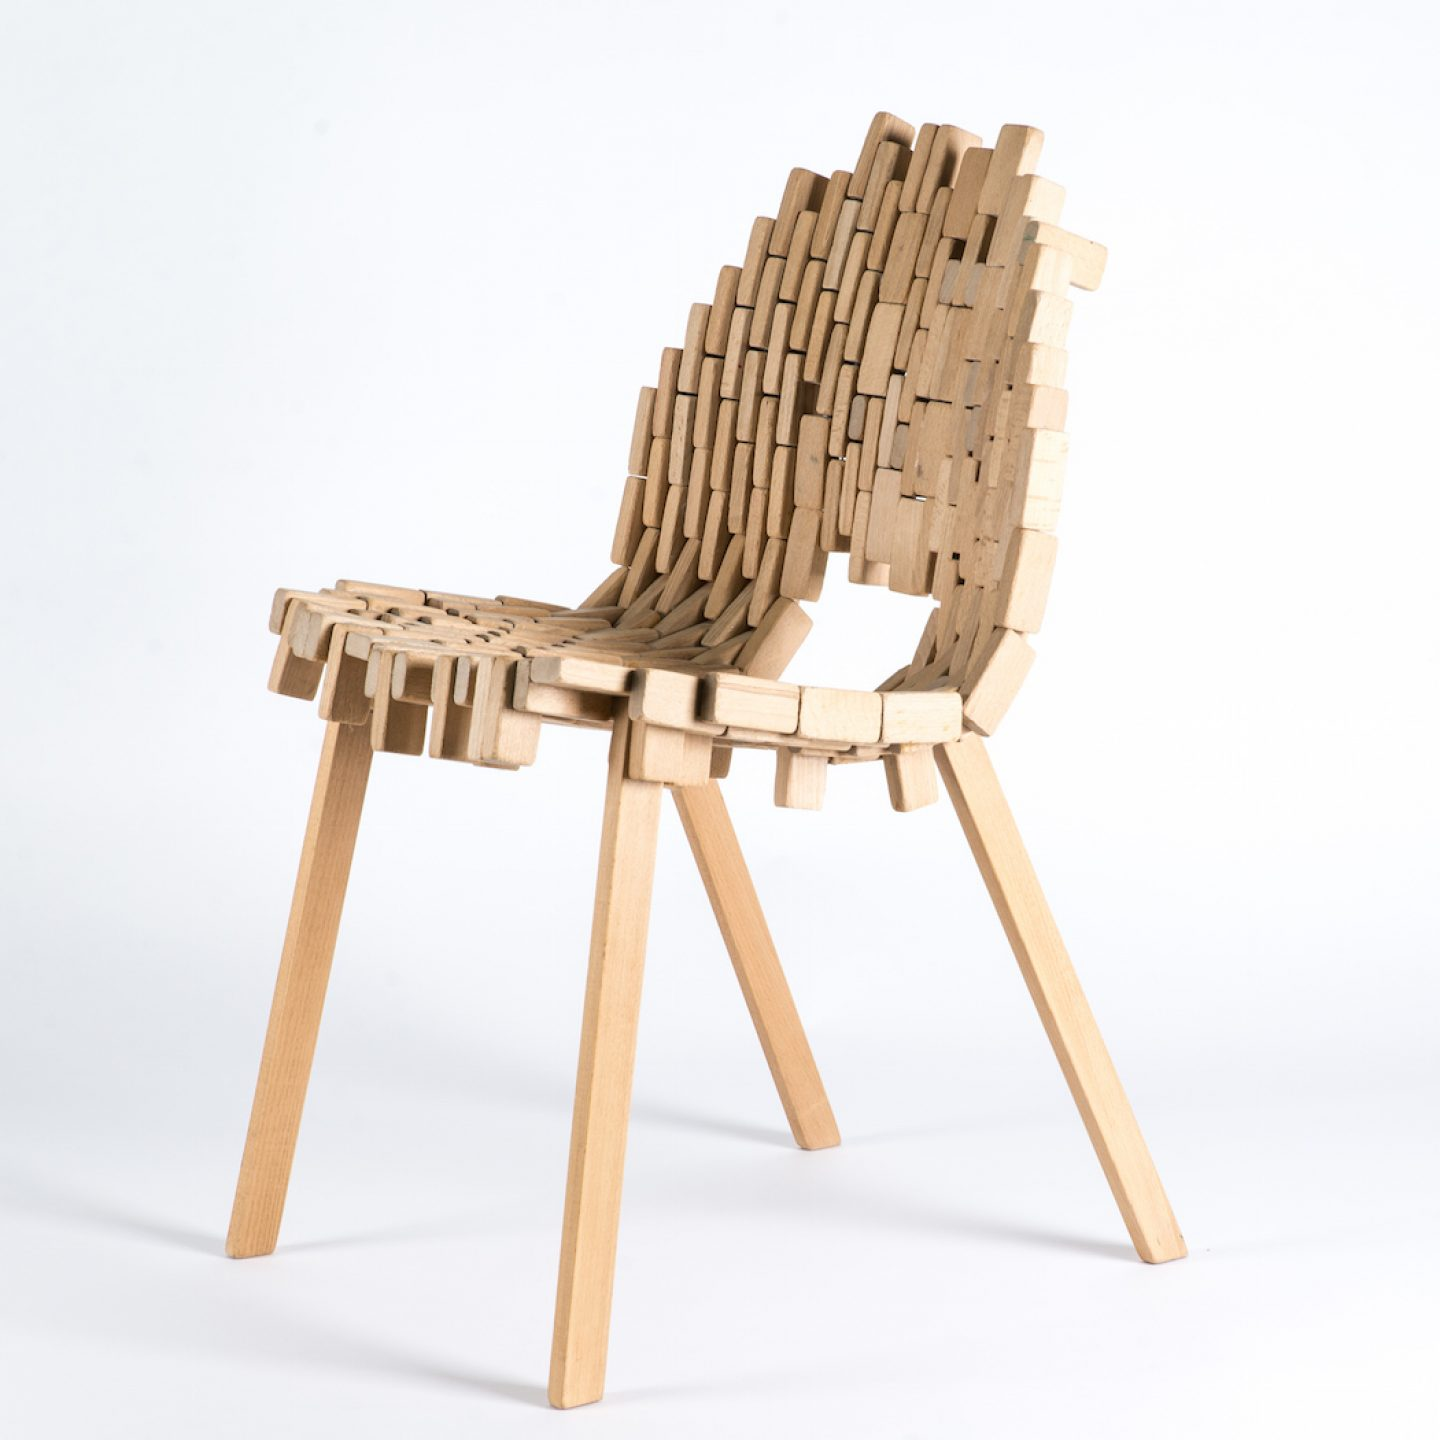 Bricks-chair-02